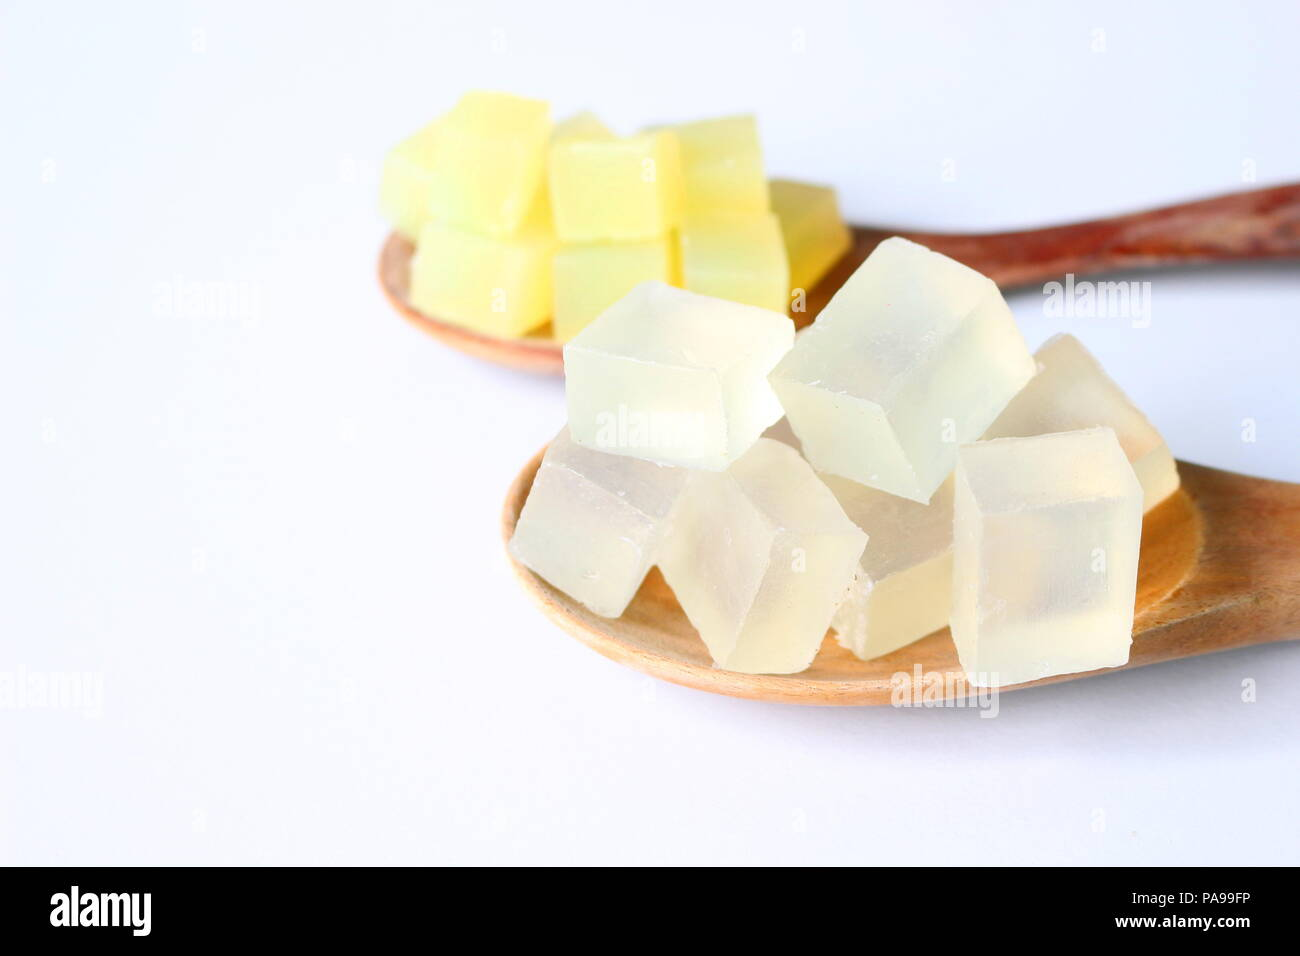 Close up of sliced transparent and yellow cocoon glycerin soap bases on white background. - Stock Image